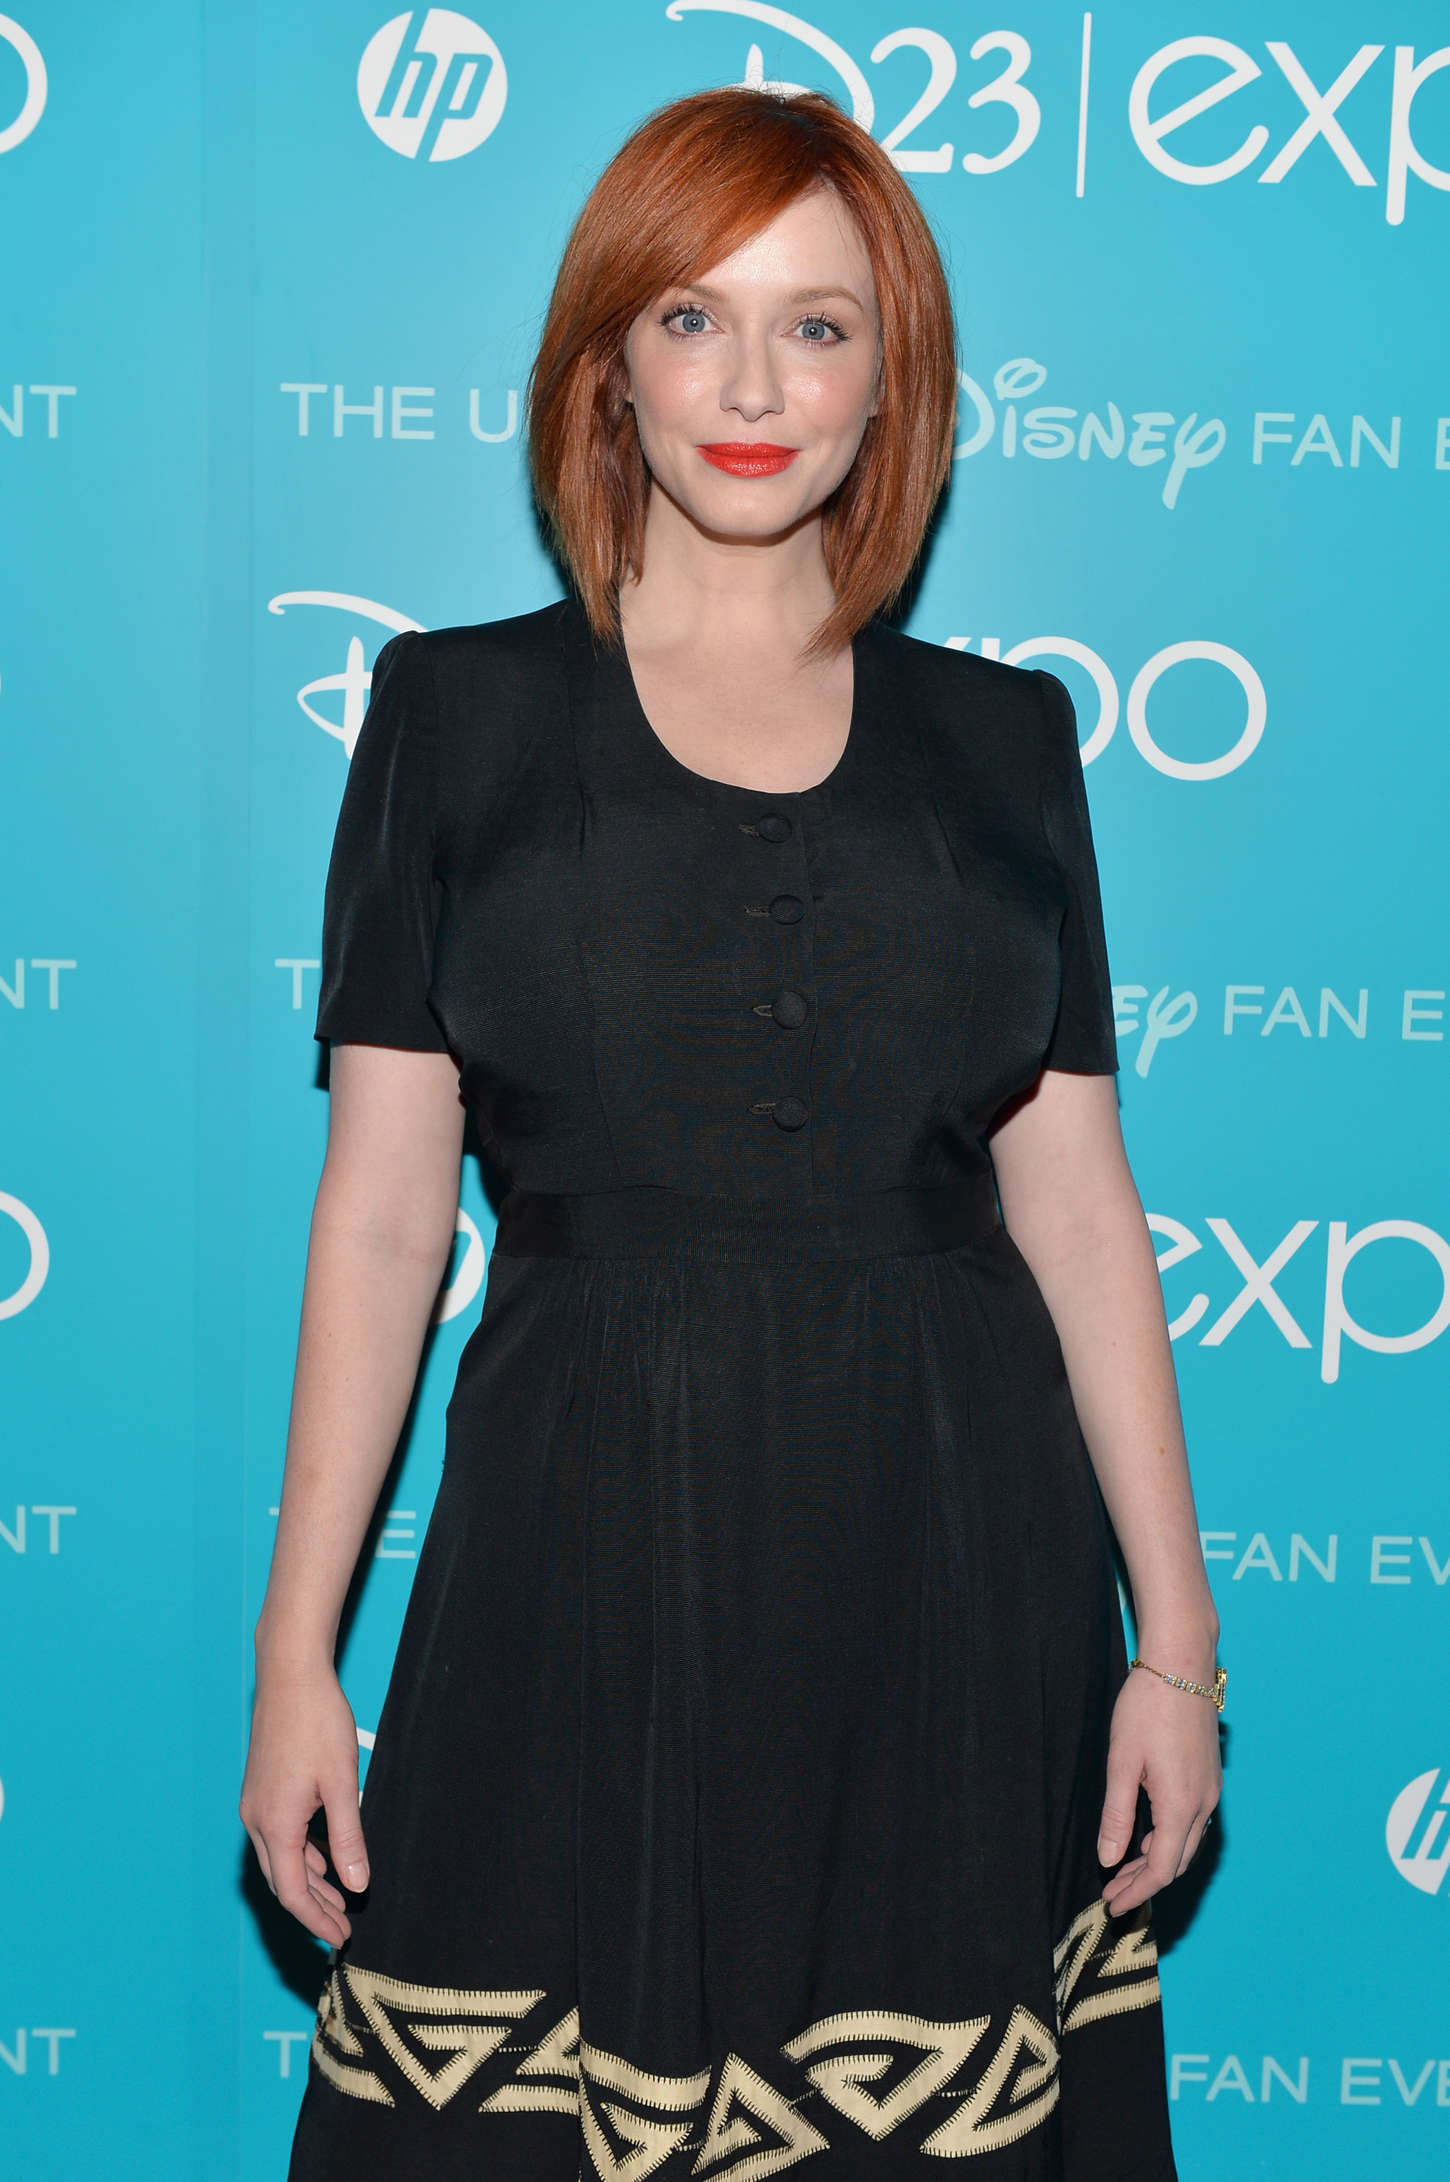 Christina Hendricks Disneys D23 Art and Imagination Expo in Anaheim